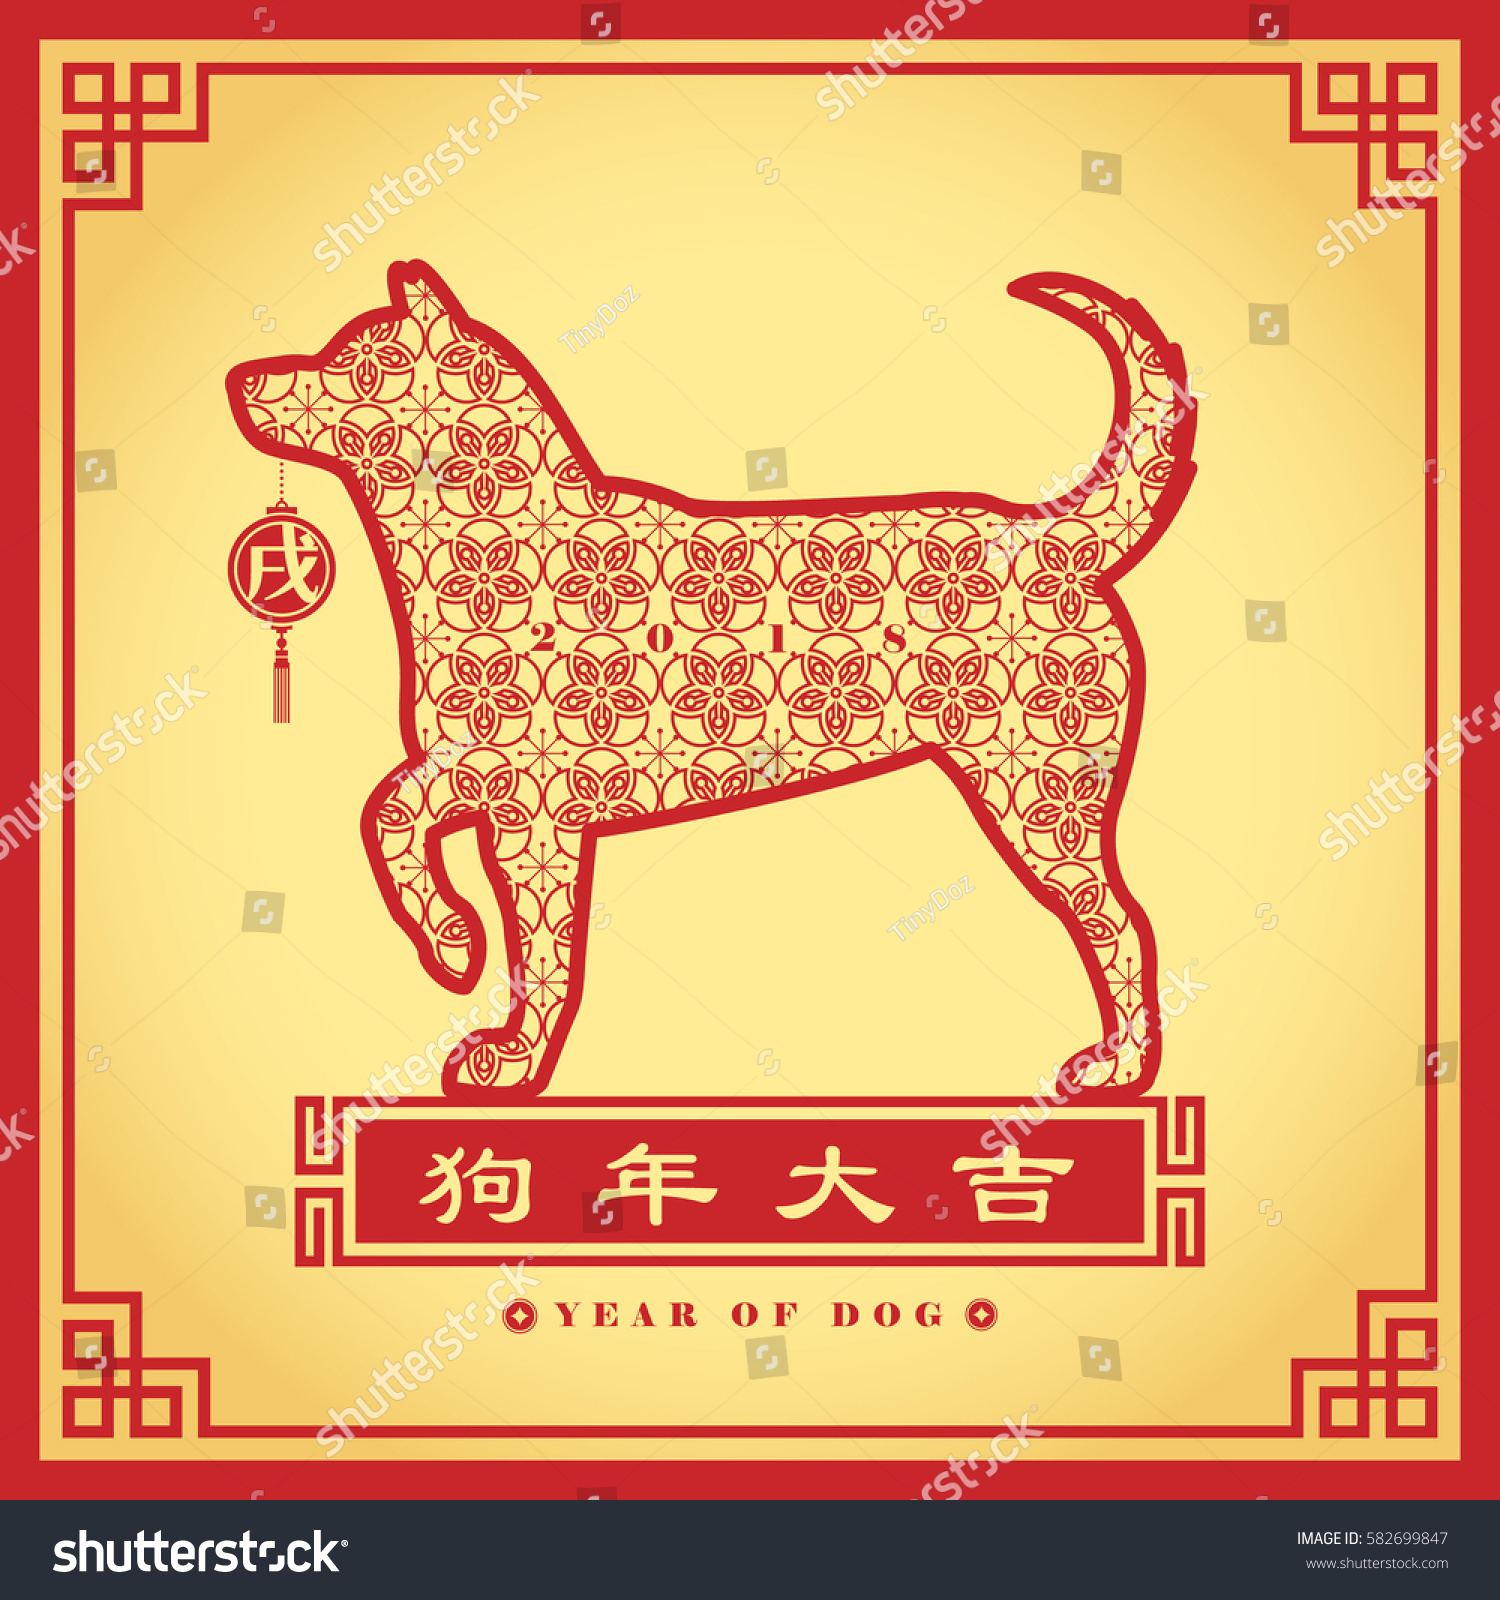 2018 Year Of Dog Chinese New Year Greeting Card Of Golden Dog With